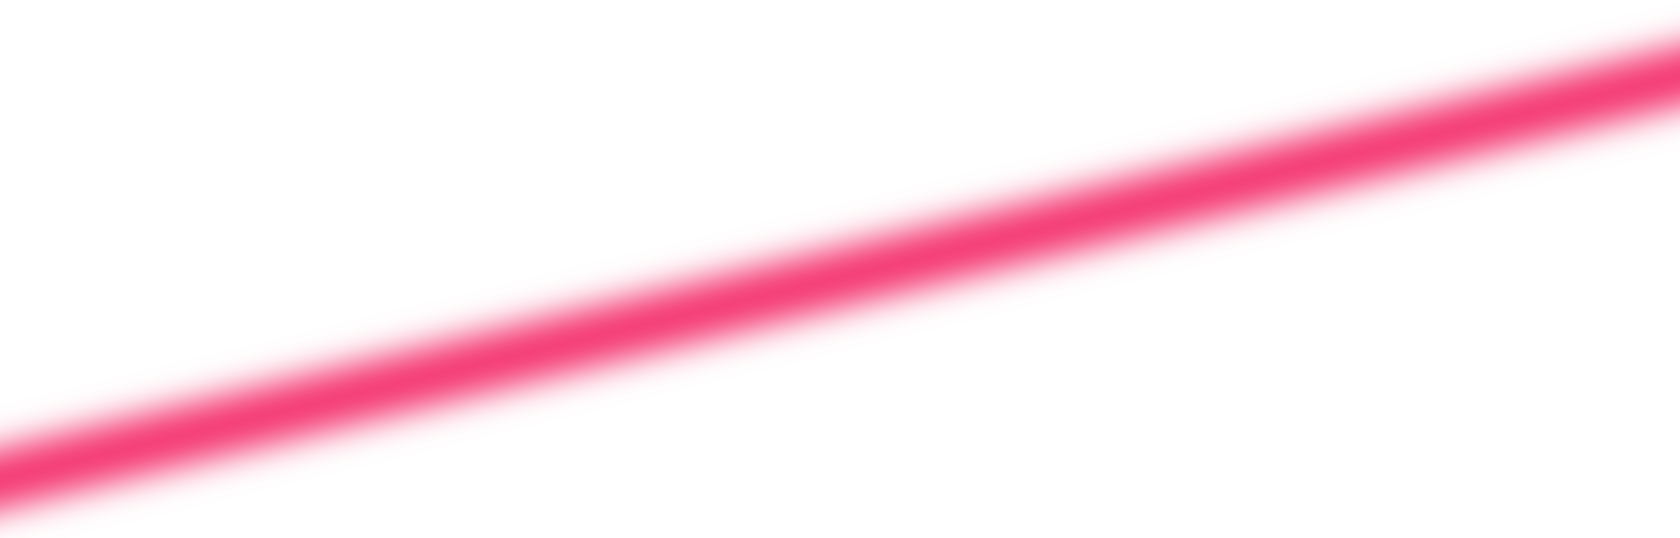 Transparent laser background. Agent a puzzle in